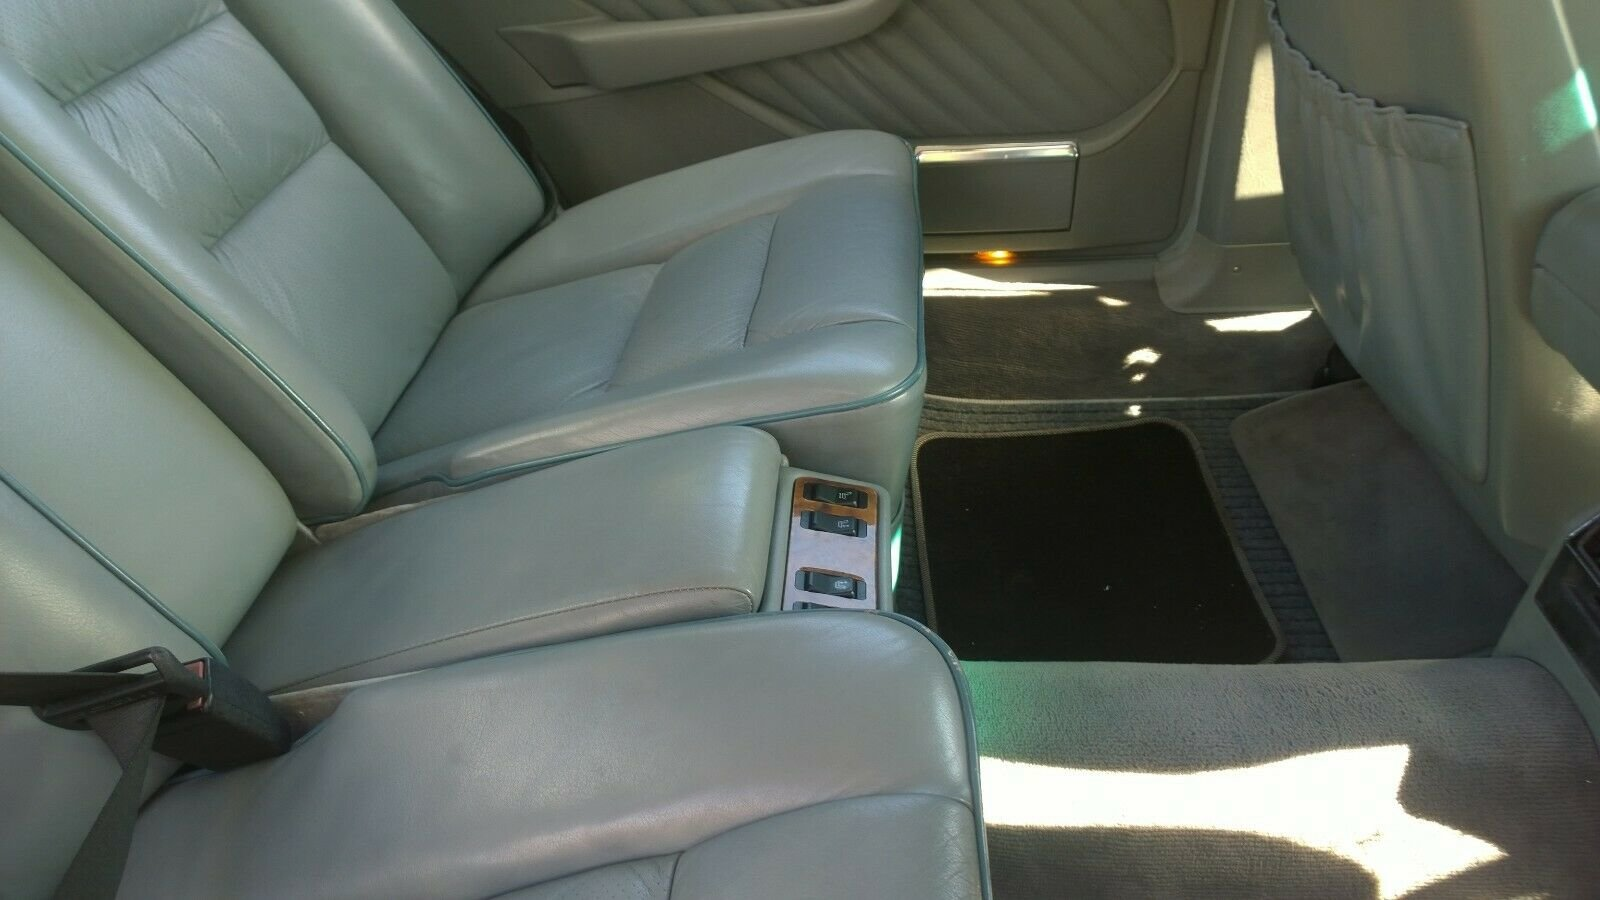 1988 Mercedes 560 SEL, V8, W126, 2+2, Cheapest in UK For Sale (picture 5 of 6)